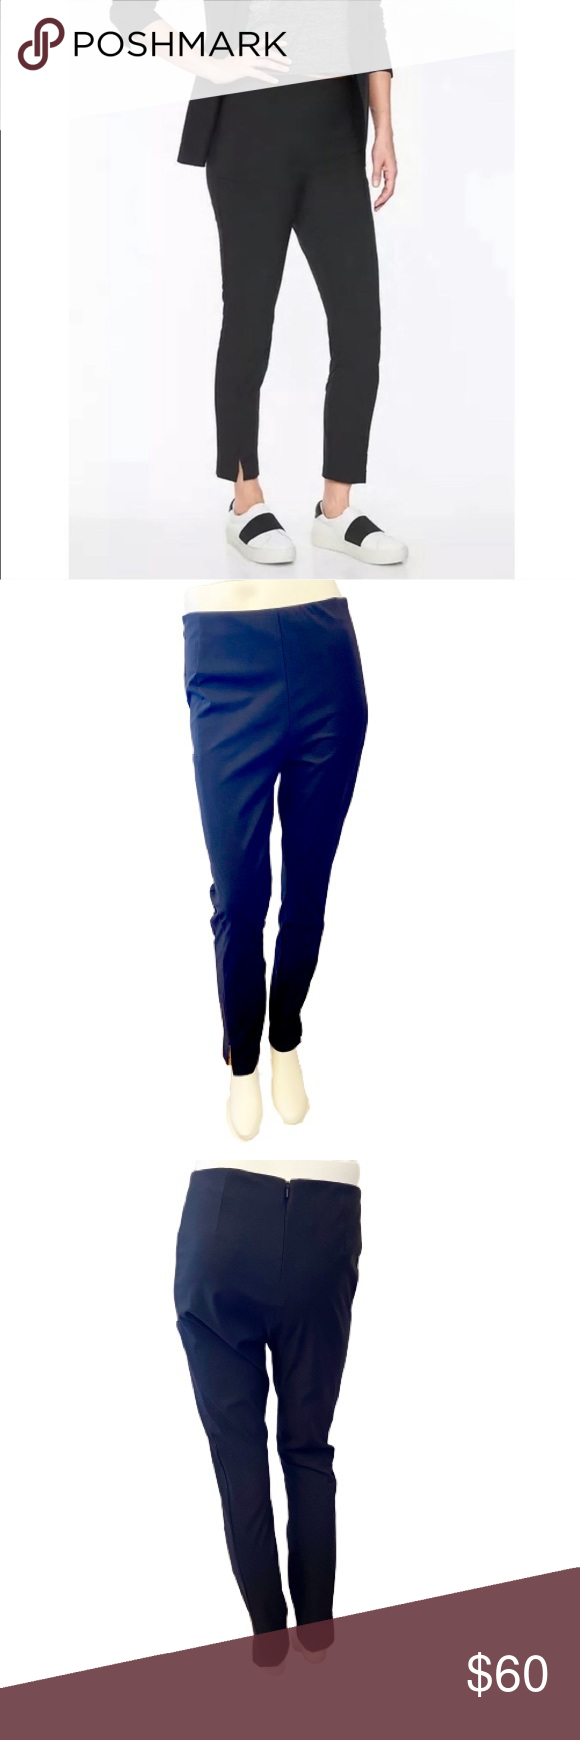 """Athleta Wander Slim Pants- Size 8 EUC Athleta Wander Slim Pant in black. These stretchy straight crop pants are durable with stretch and have a skulptek waistband for a flattering look and a zipper closure. Wear to work, lunch, or a day of adventure.   ▪️Size: 8 ▪️Waist: 14.5"""" across ▪️Rise: 10.5"""" ▪️Inseam: 28"""" ▪️Material: 90% Recycled Nylon, 10% Spandex   Offers welcome!  *All measurements are taken flat lay and are approximations.  0380-8 Athleta Pants Ankle & Cropped"""